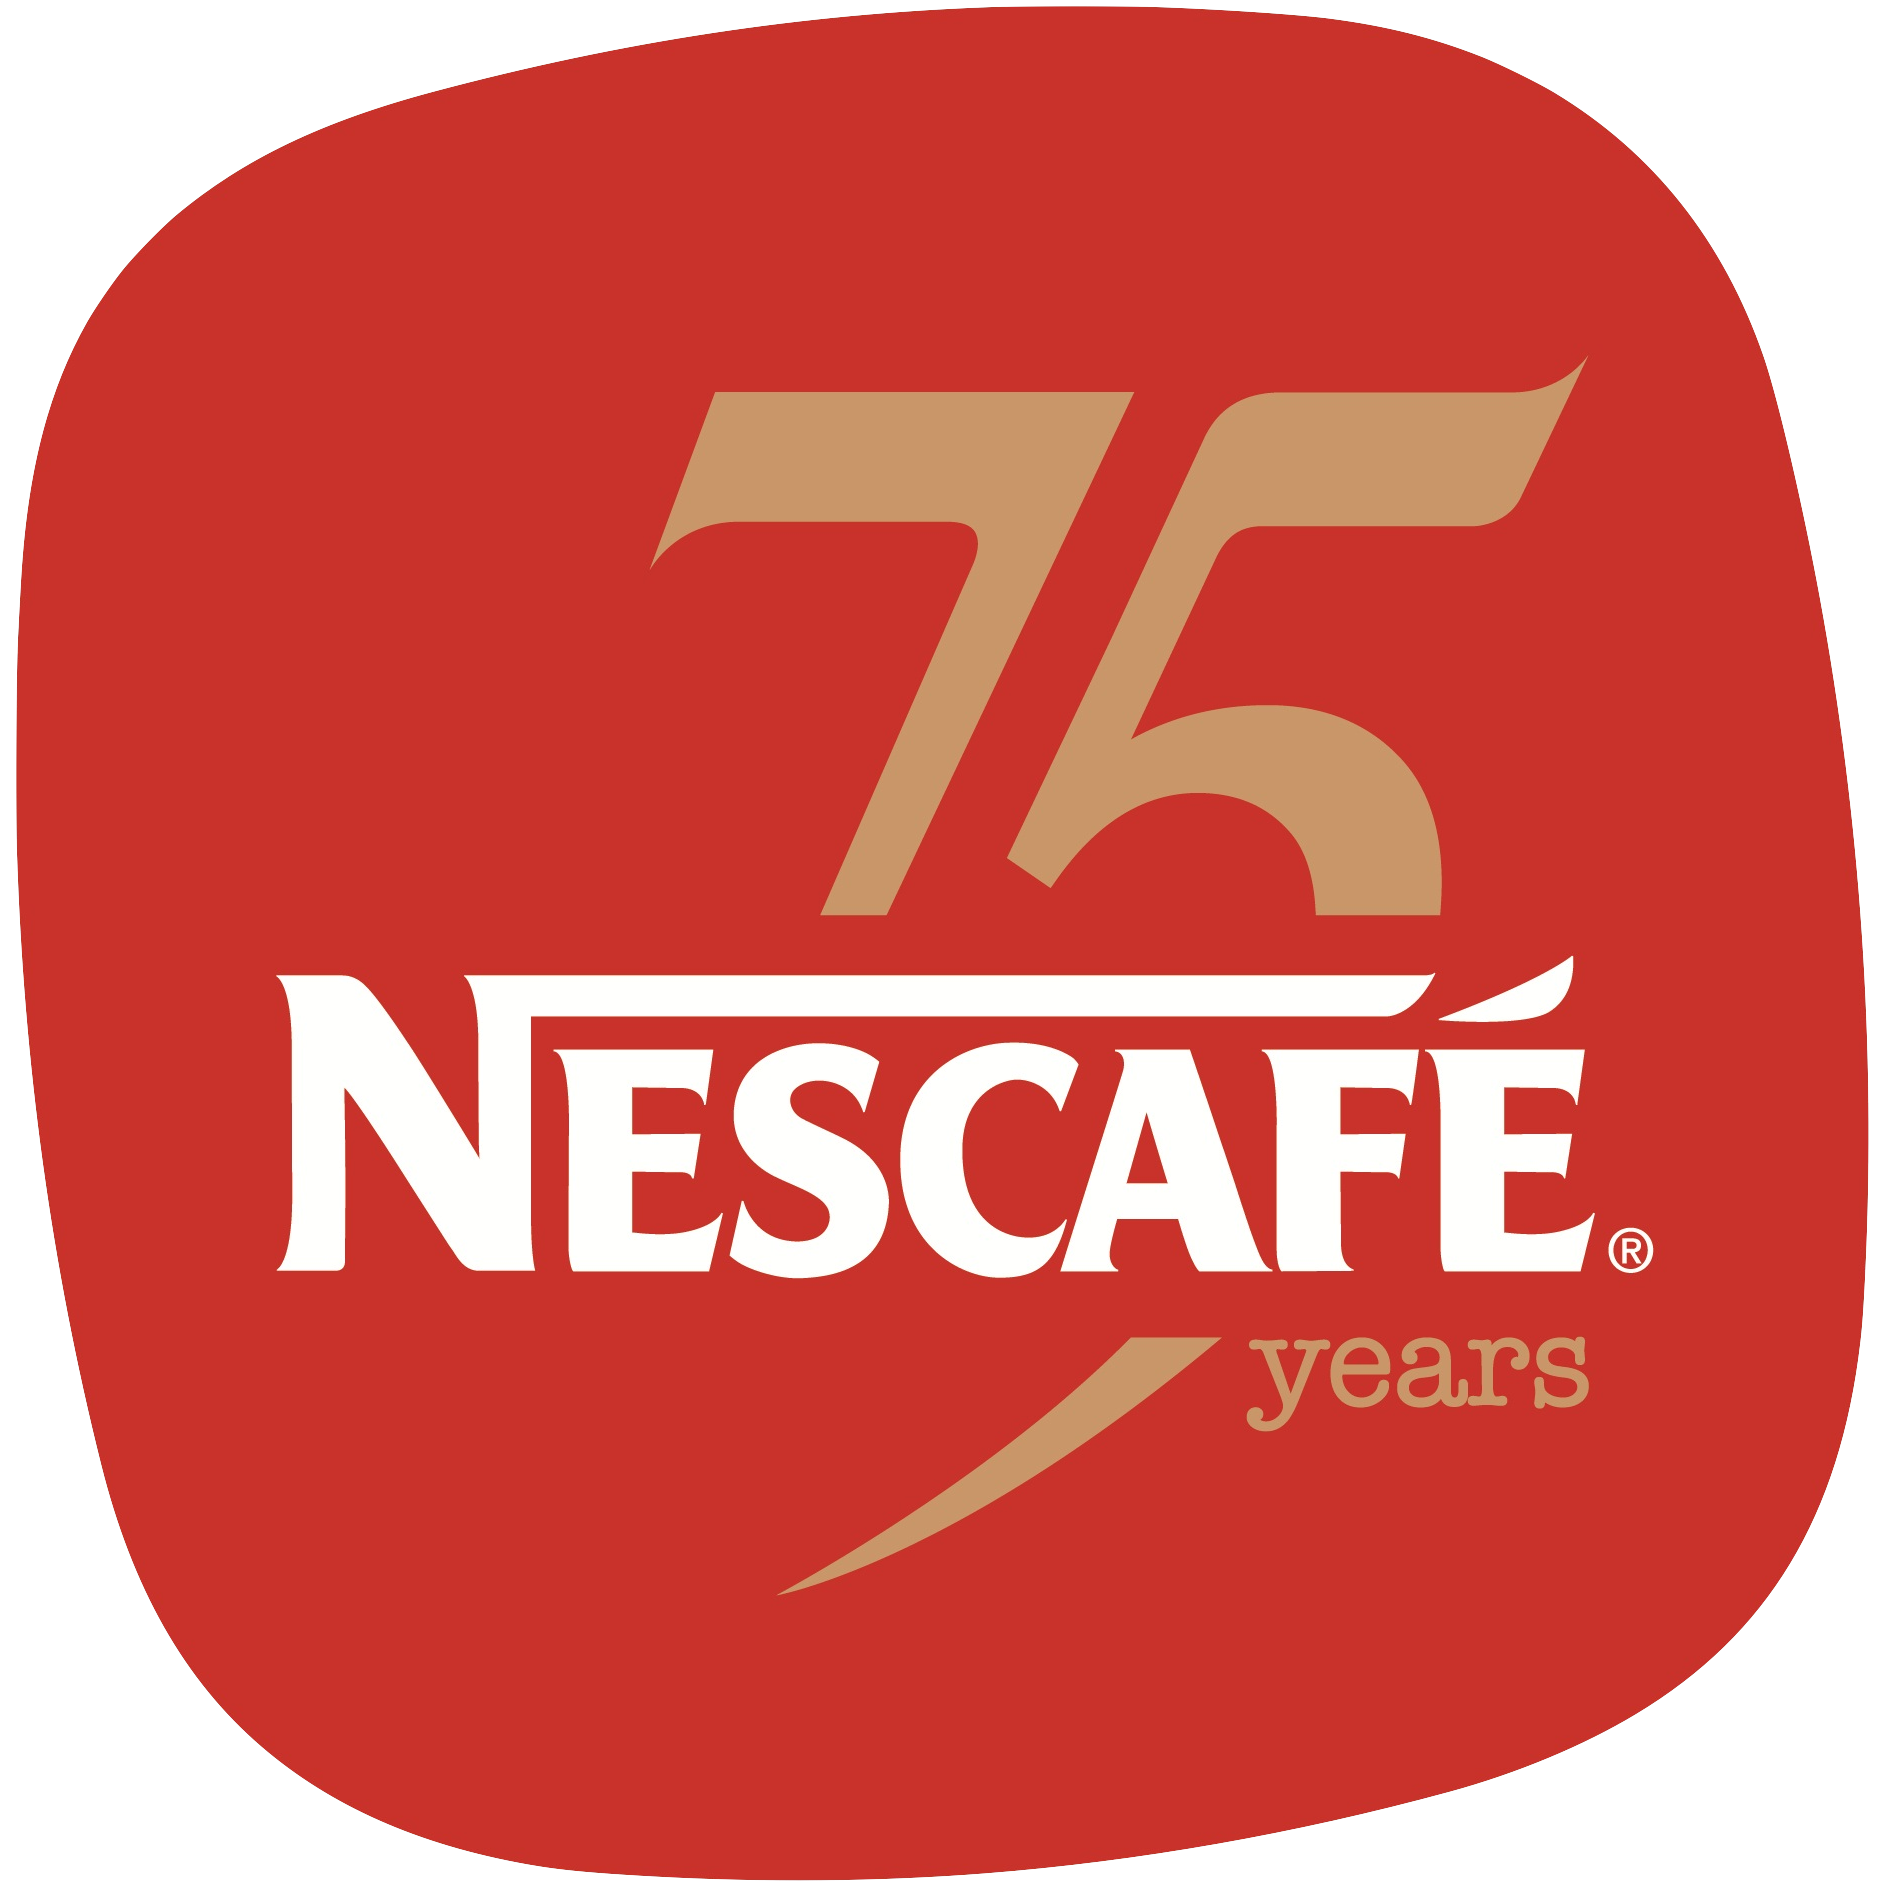 Nescafé Logo - Nescafé | Logopedia | FANDOM powered by Wikia